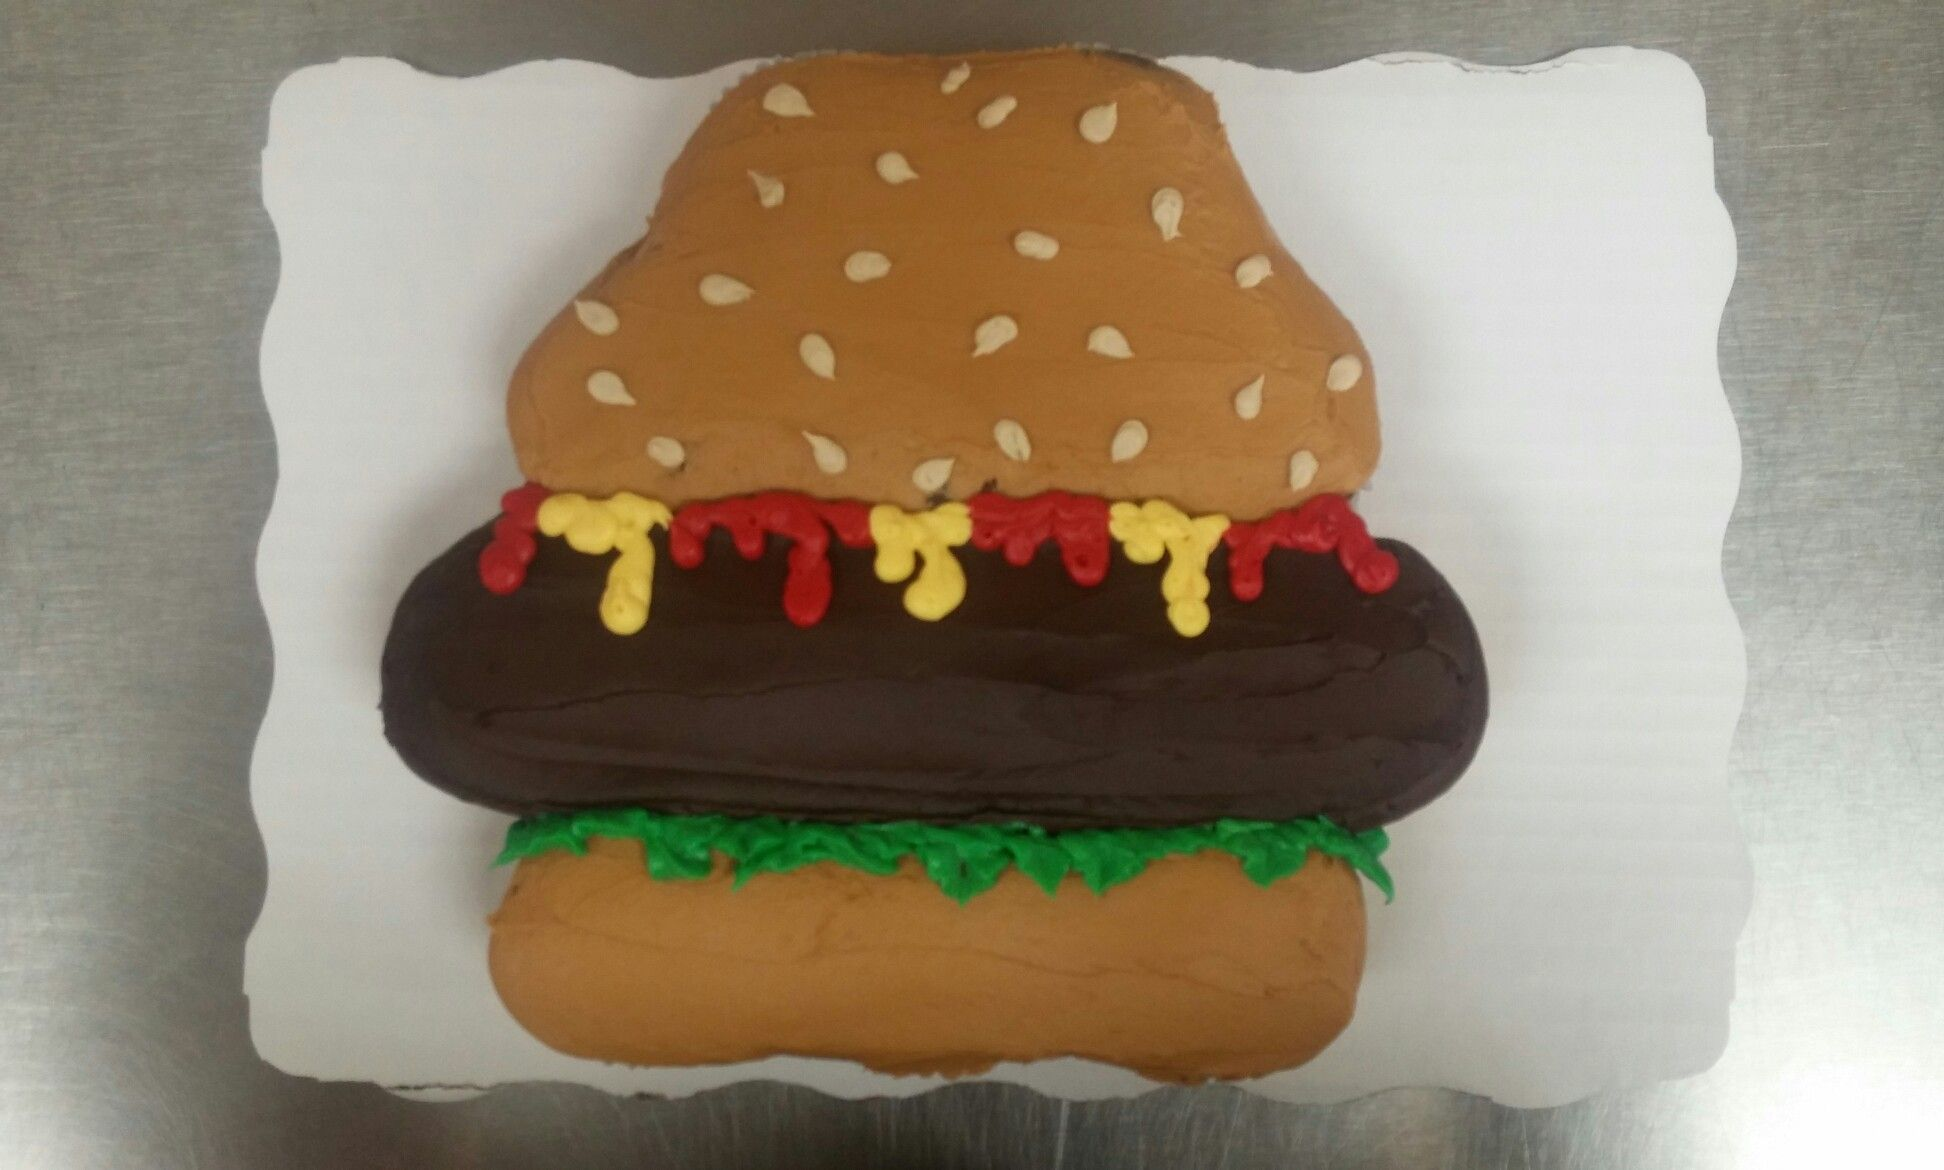 12 Ct Hamburger Cupcake Cake With Images Cupcake Cakes